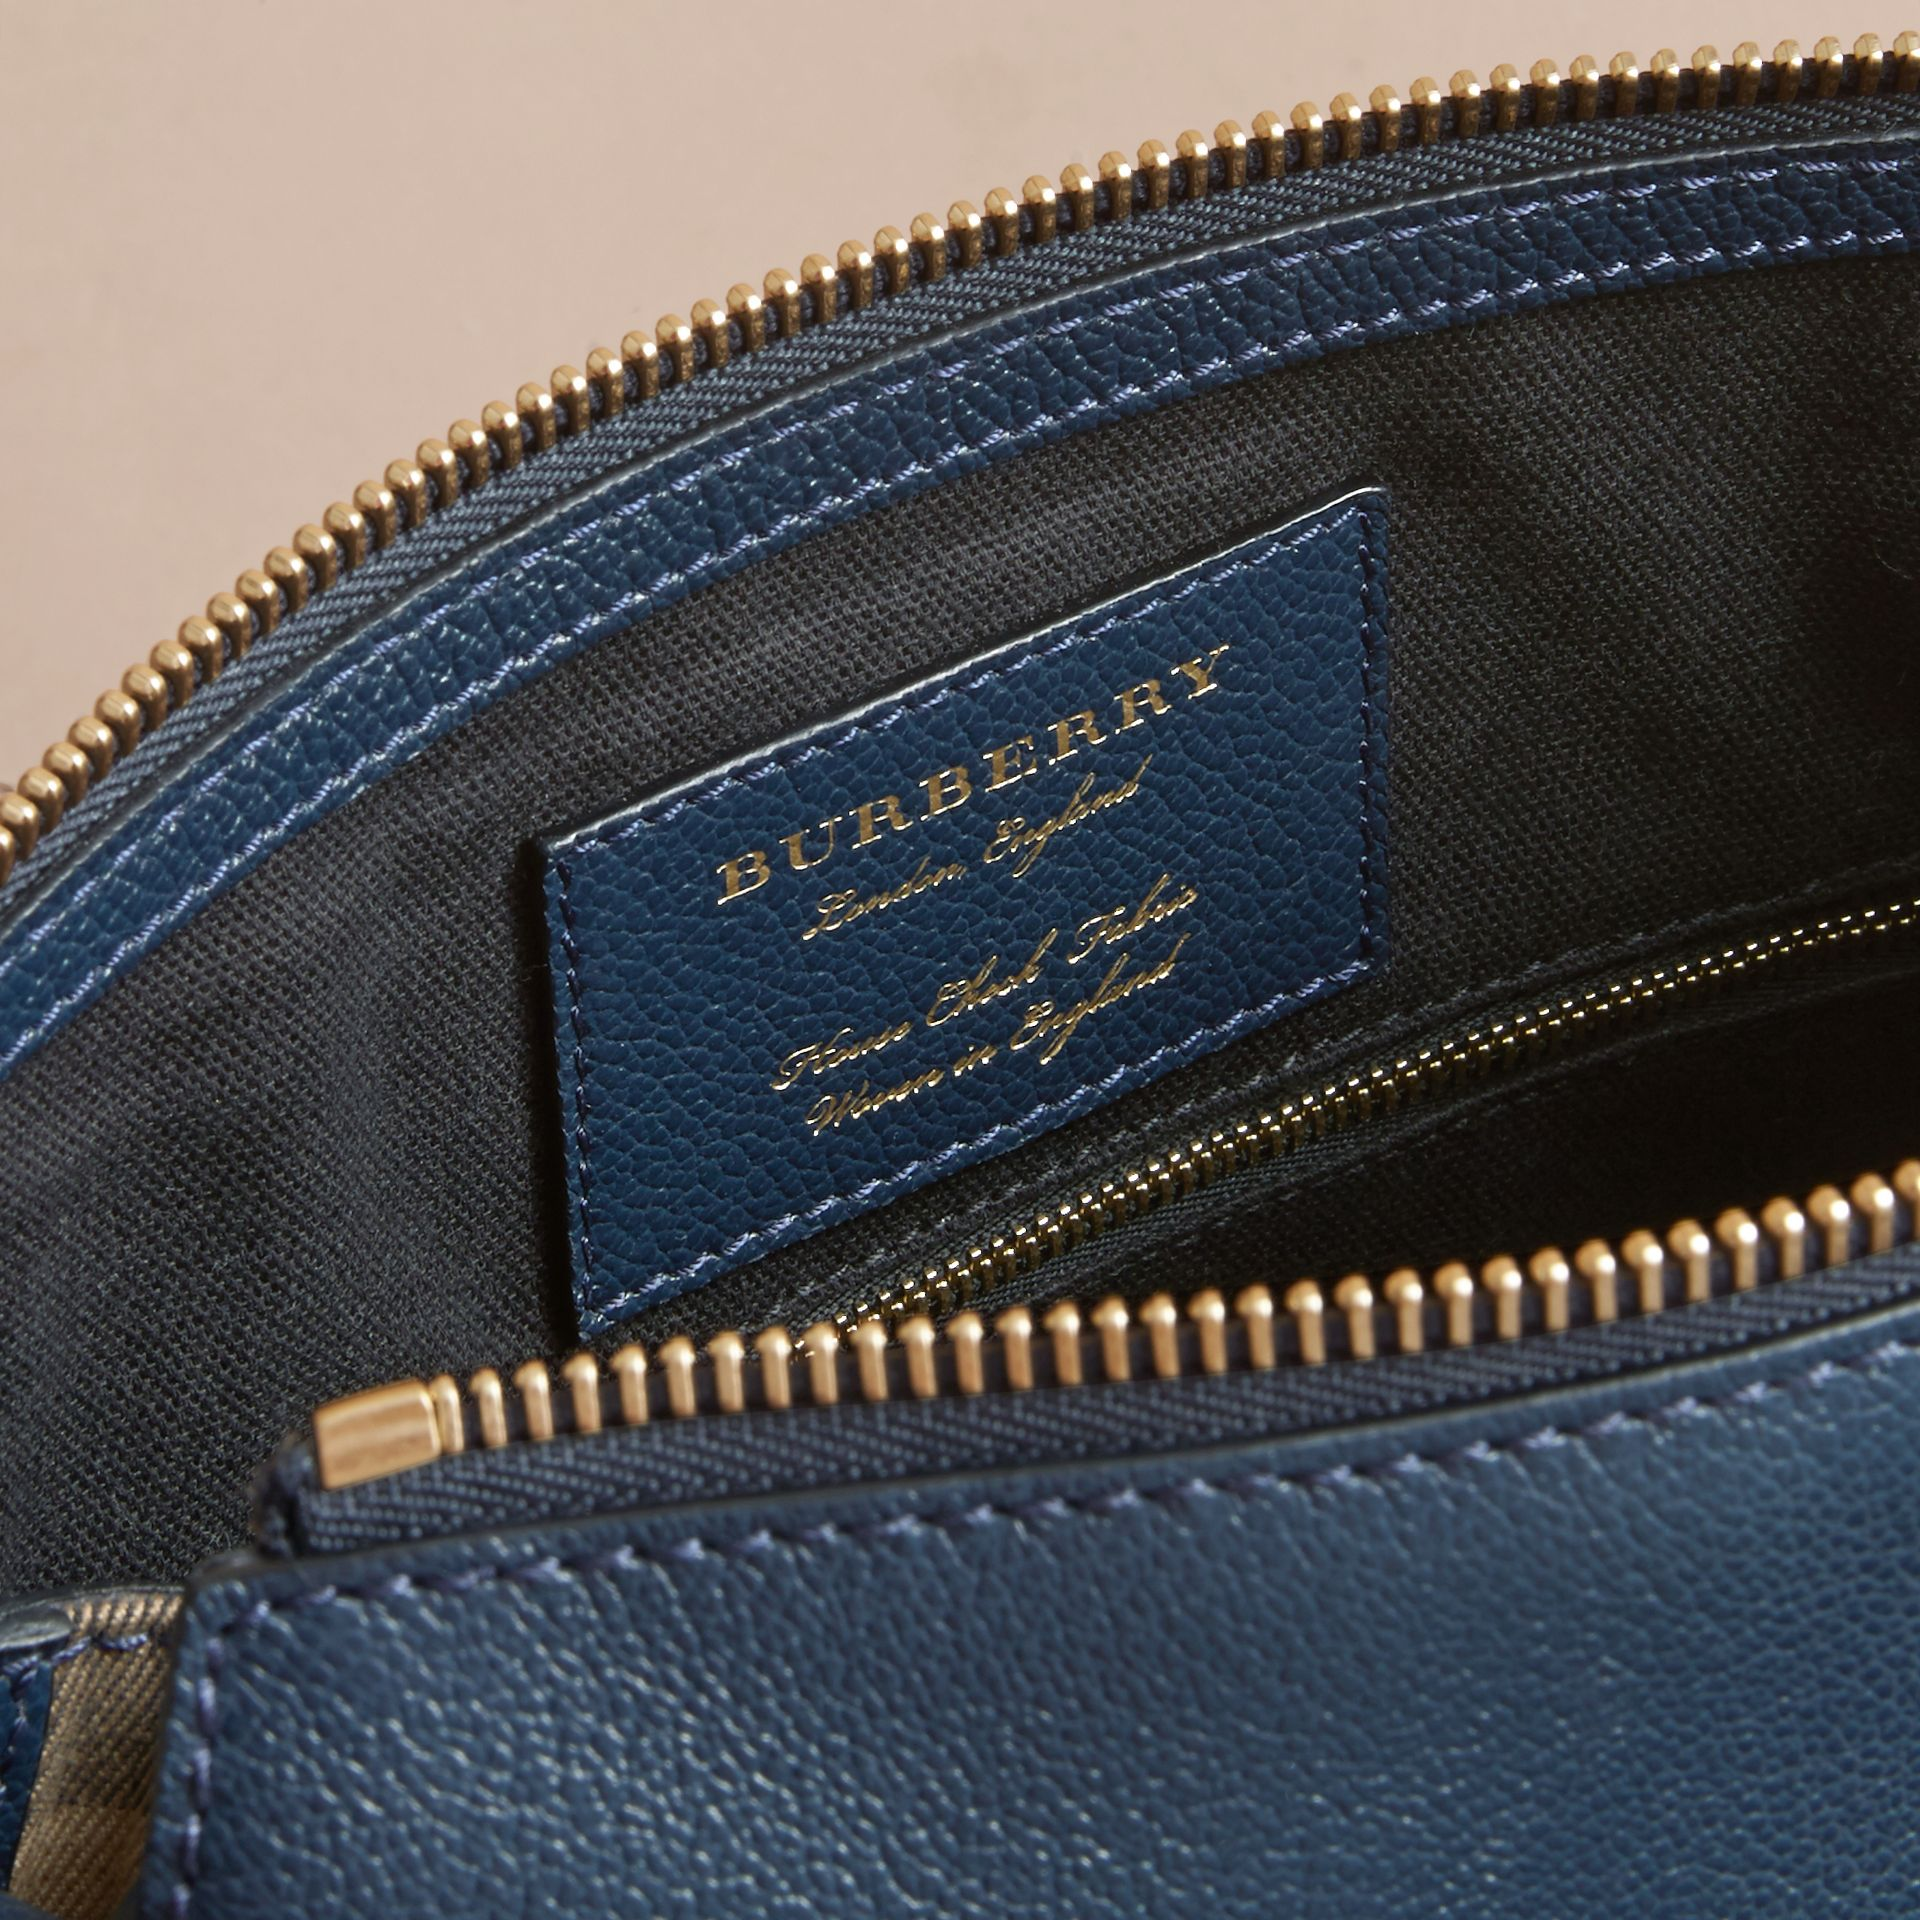 Buckle Detail Leather and House Check Crossbody Bag in Blue Carbon - Women | Burberry - gallery image 5